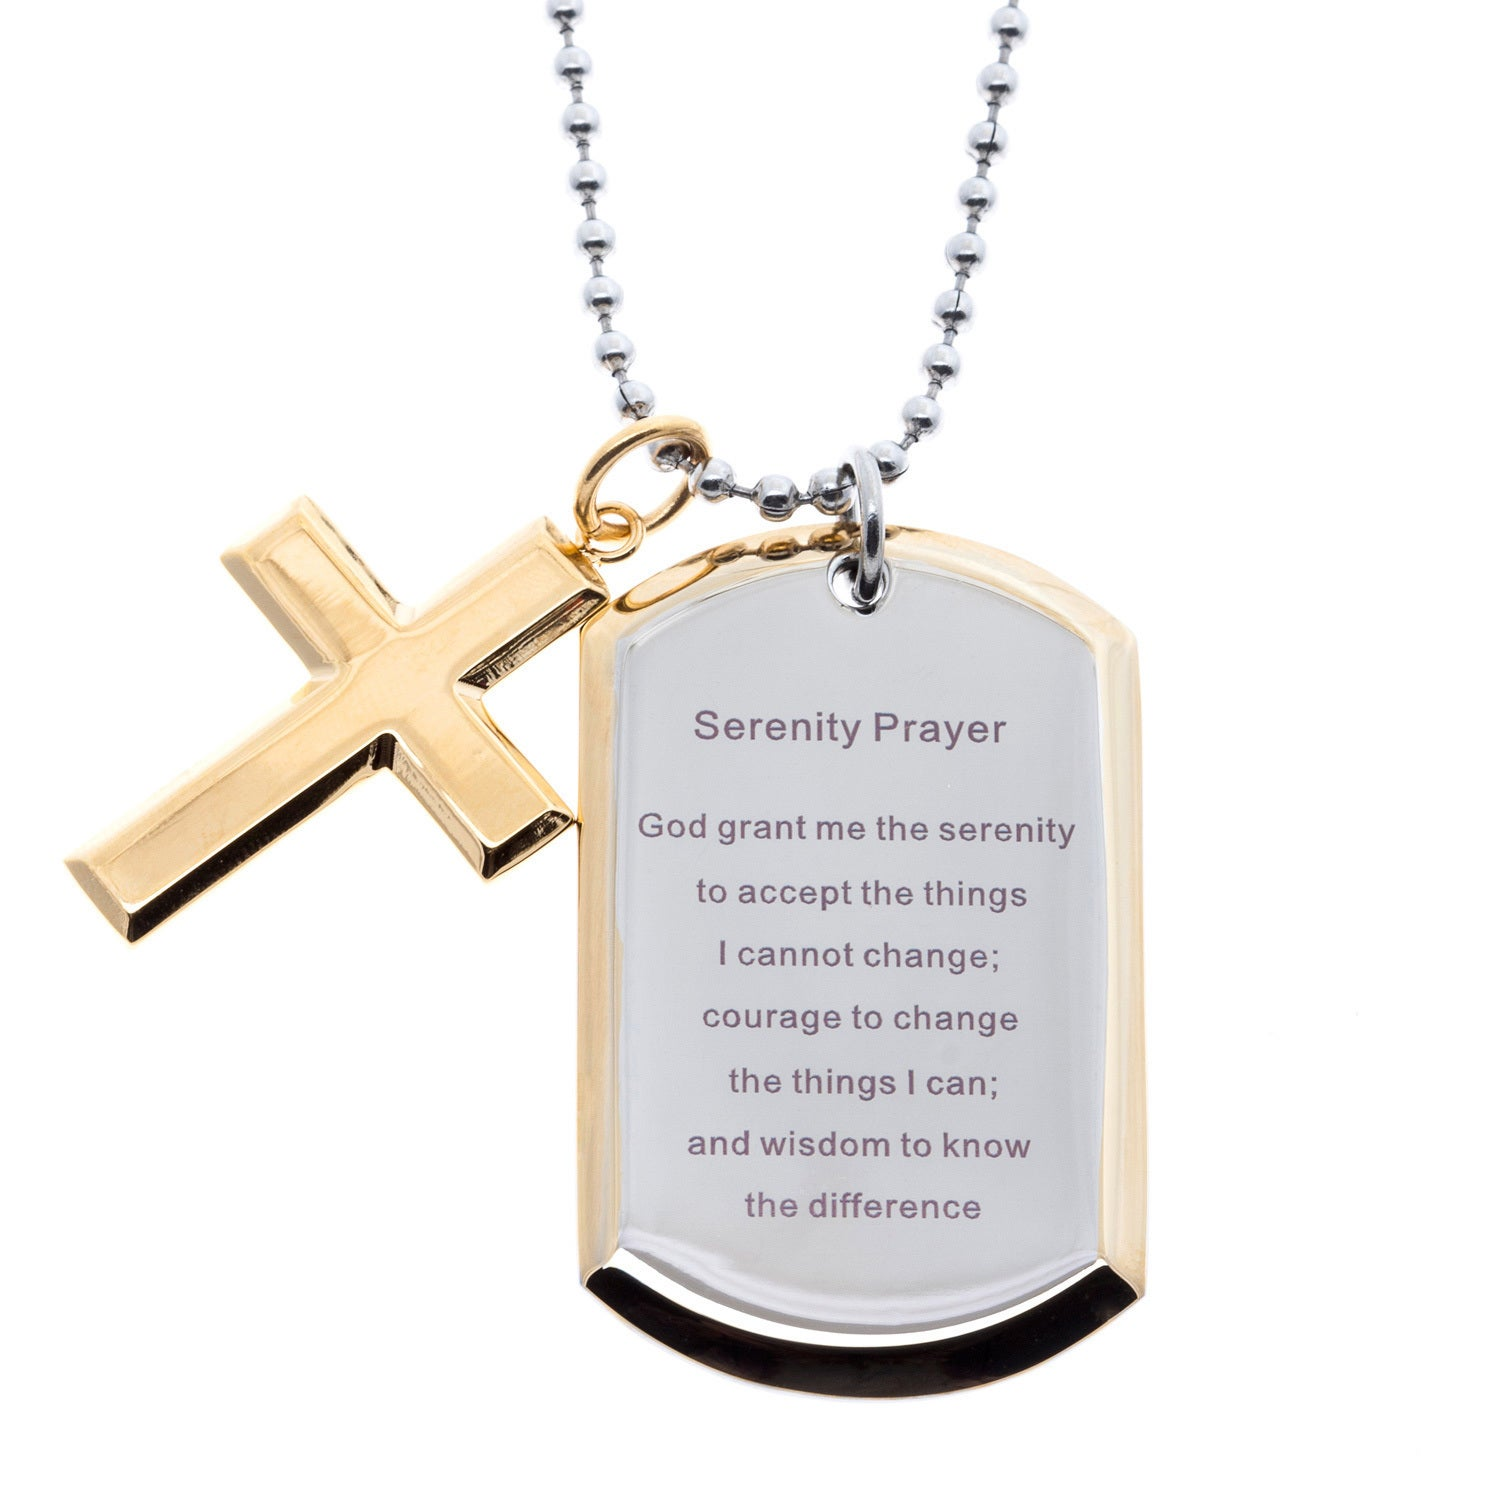 prayer moon products filigree img serenity cross sam necklace